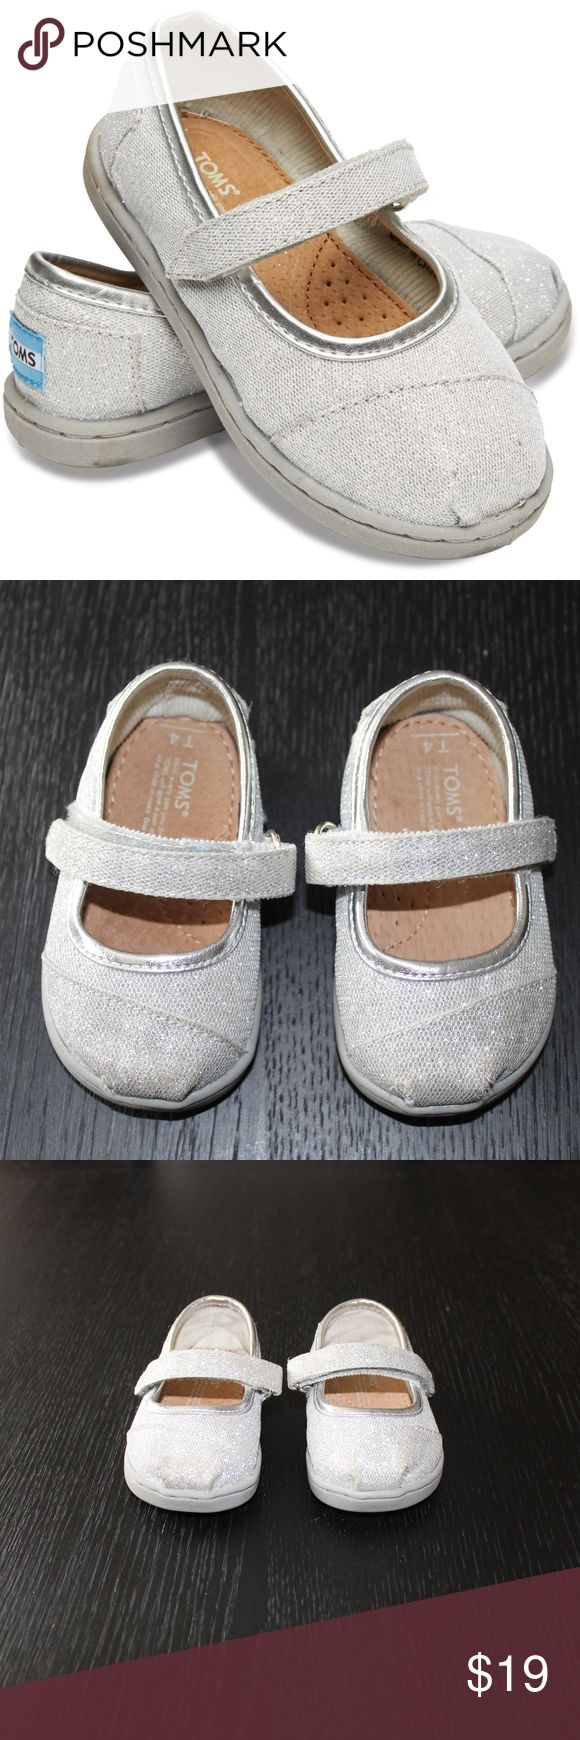 SILVER GLIMMER TINY TOMS MARY JANES Lightly worn 4T Toms Silver glimmer tiny tom shoes.   Please see photos for details Toms Shoes Baby & Walker